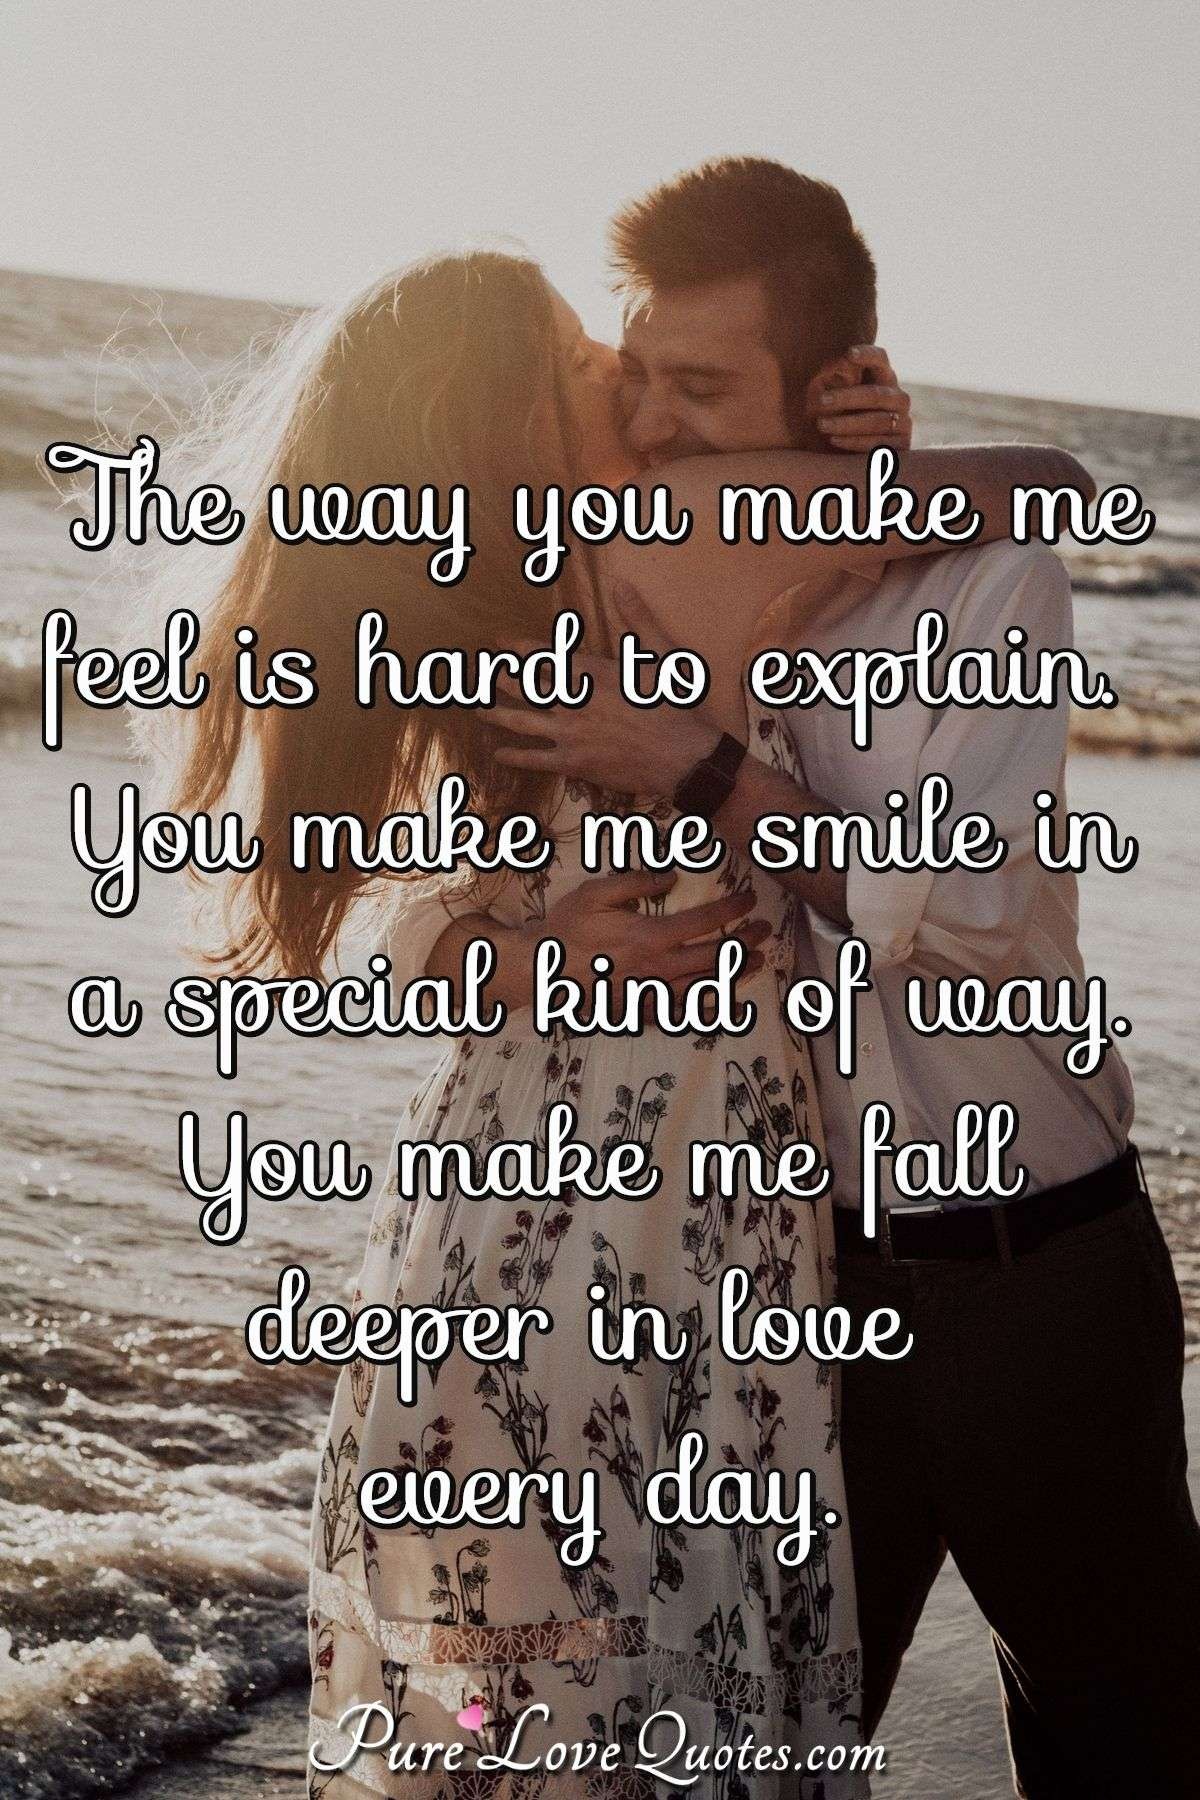 The way you make me feel is hard to explain. You make me smile in a special kind of way. You make me fall deeper in love every day. - Anonymous